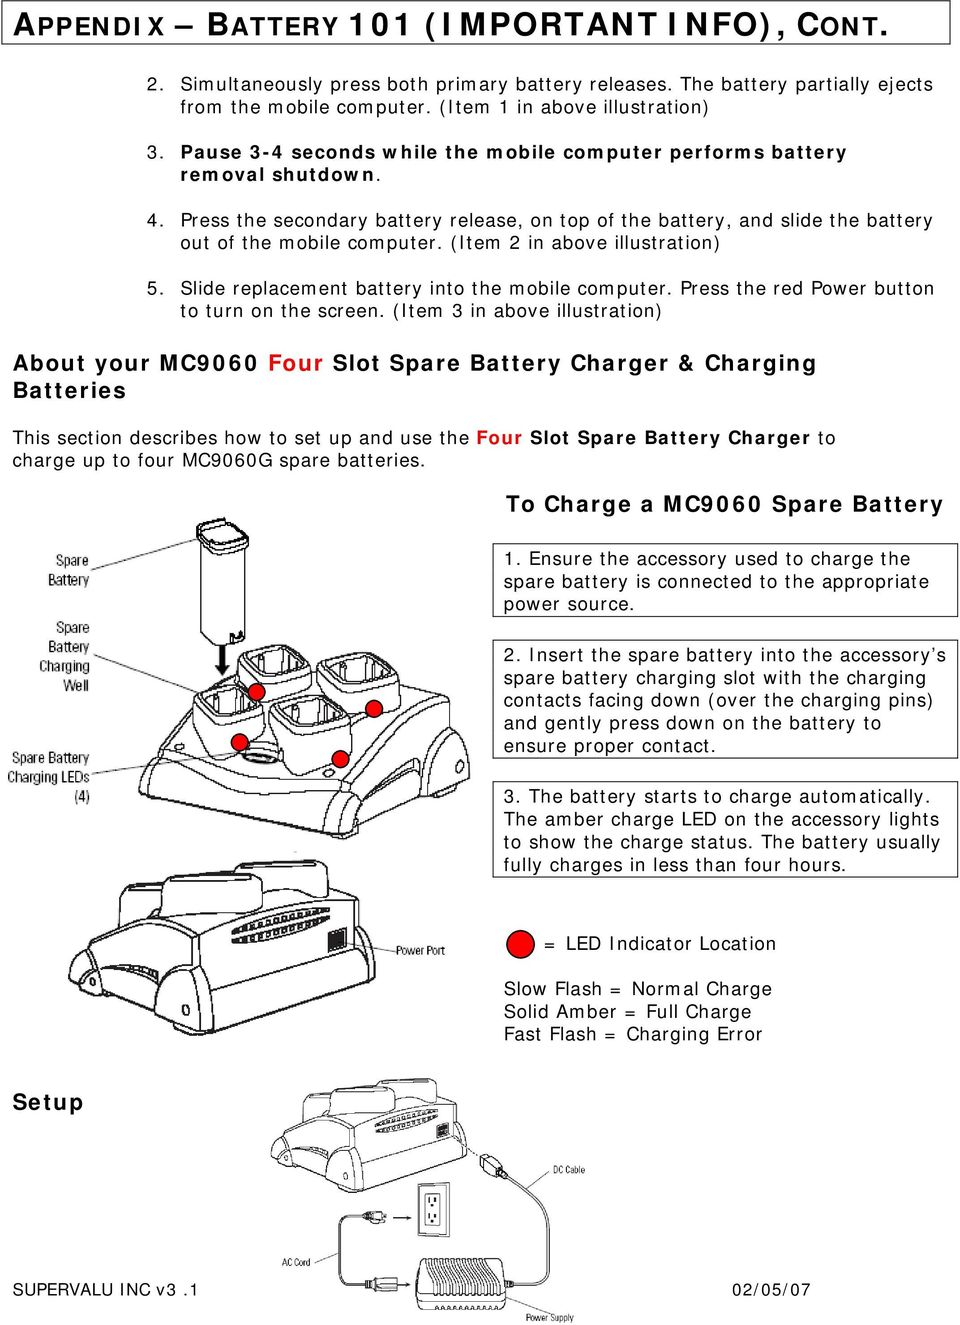 (Item 2 in above illustration) 5. Slide replacement battery into the mobile computer. Press the red Power button to turn on the screen.